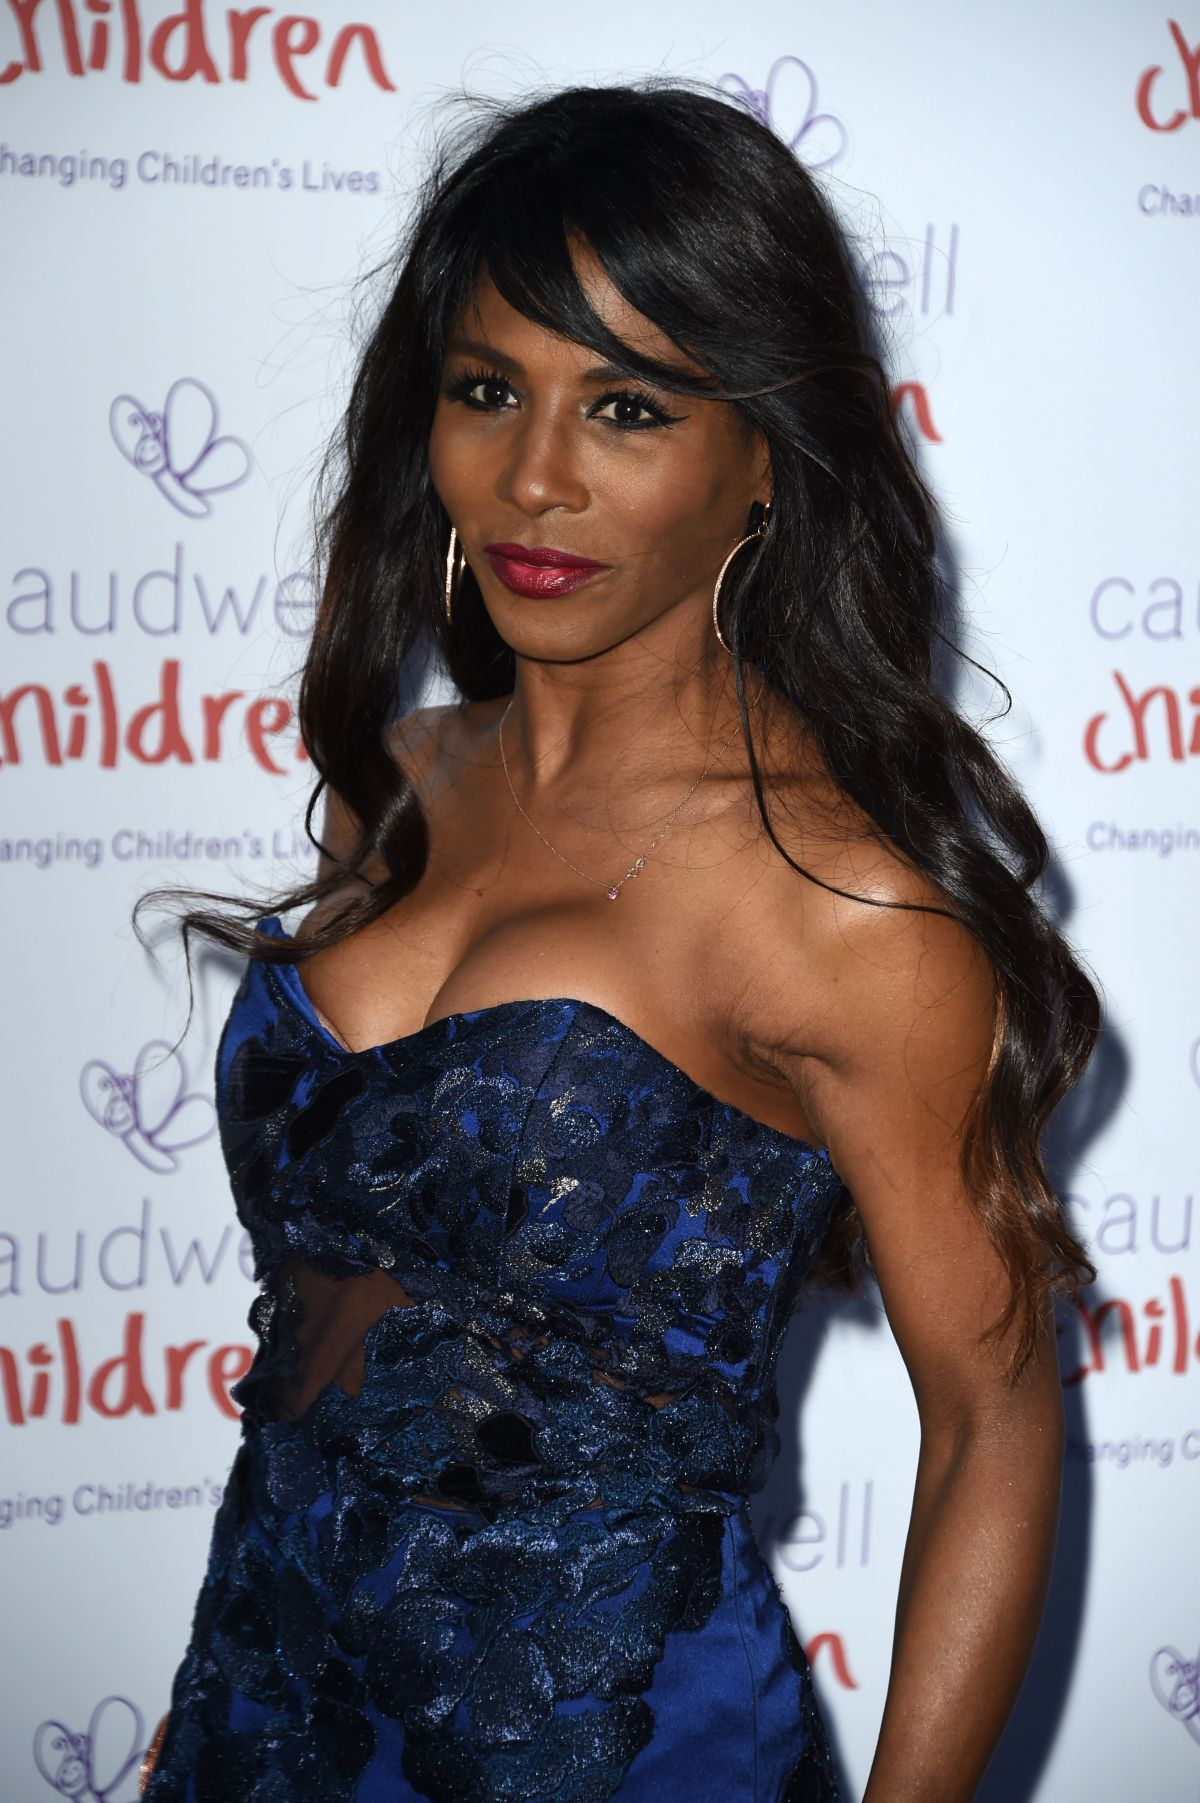 Sinitta At Caudwell Children Butterfly Ball - Celebzz - Celebzz Emma Watson